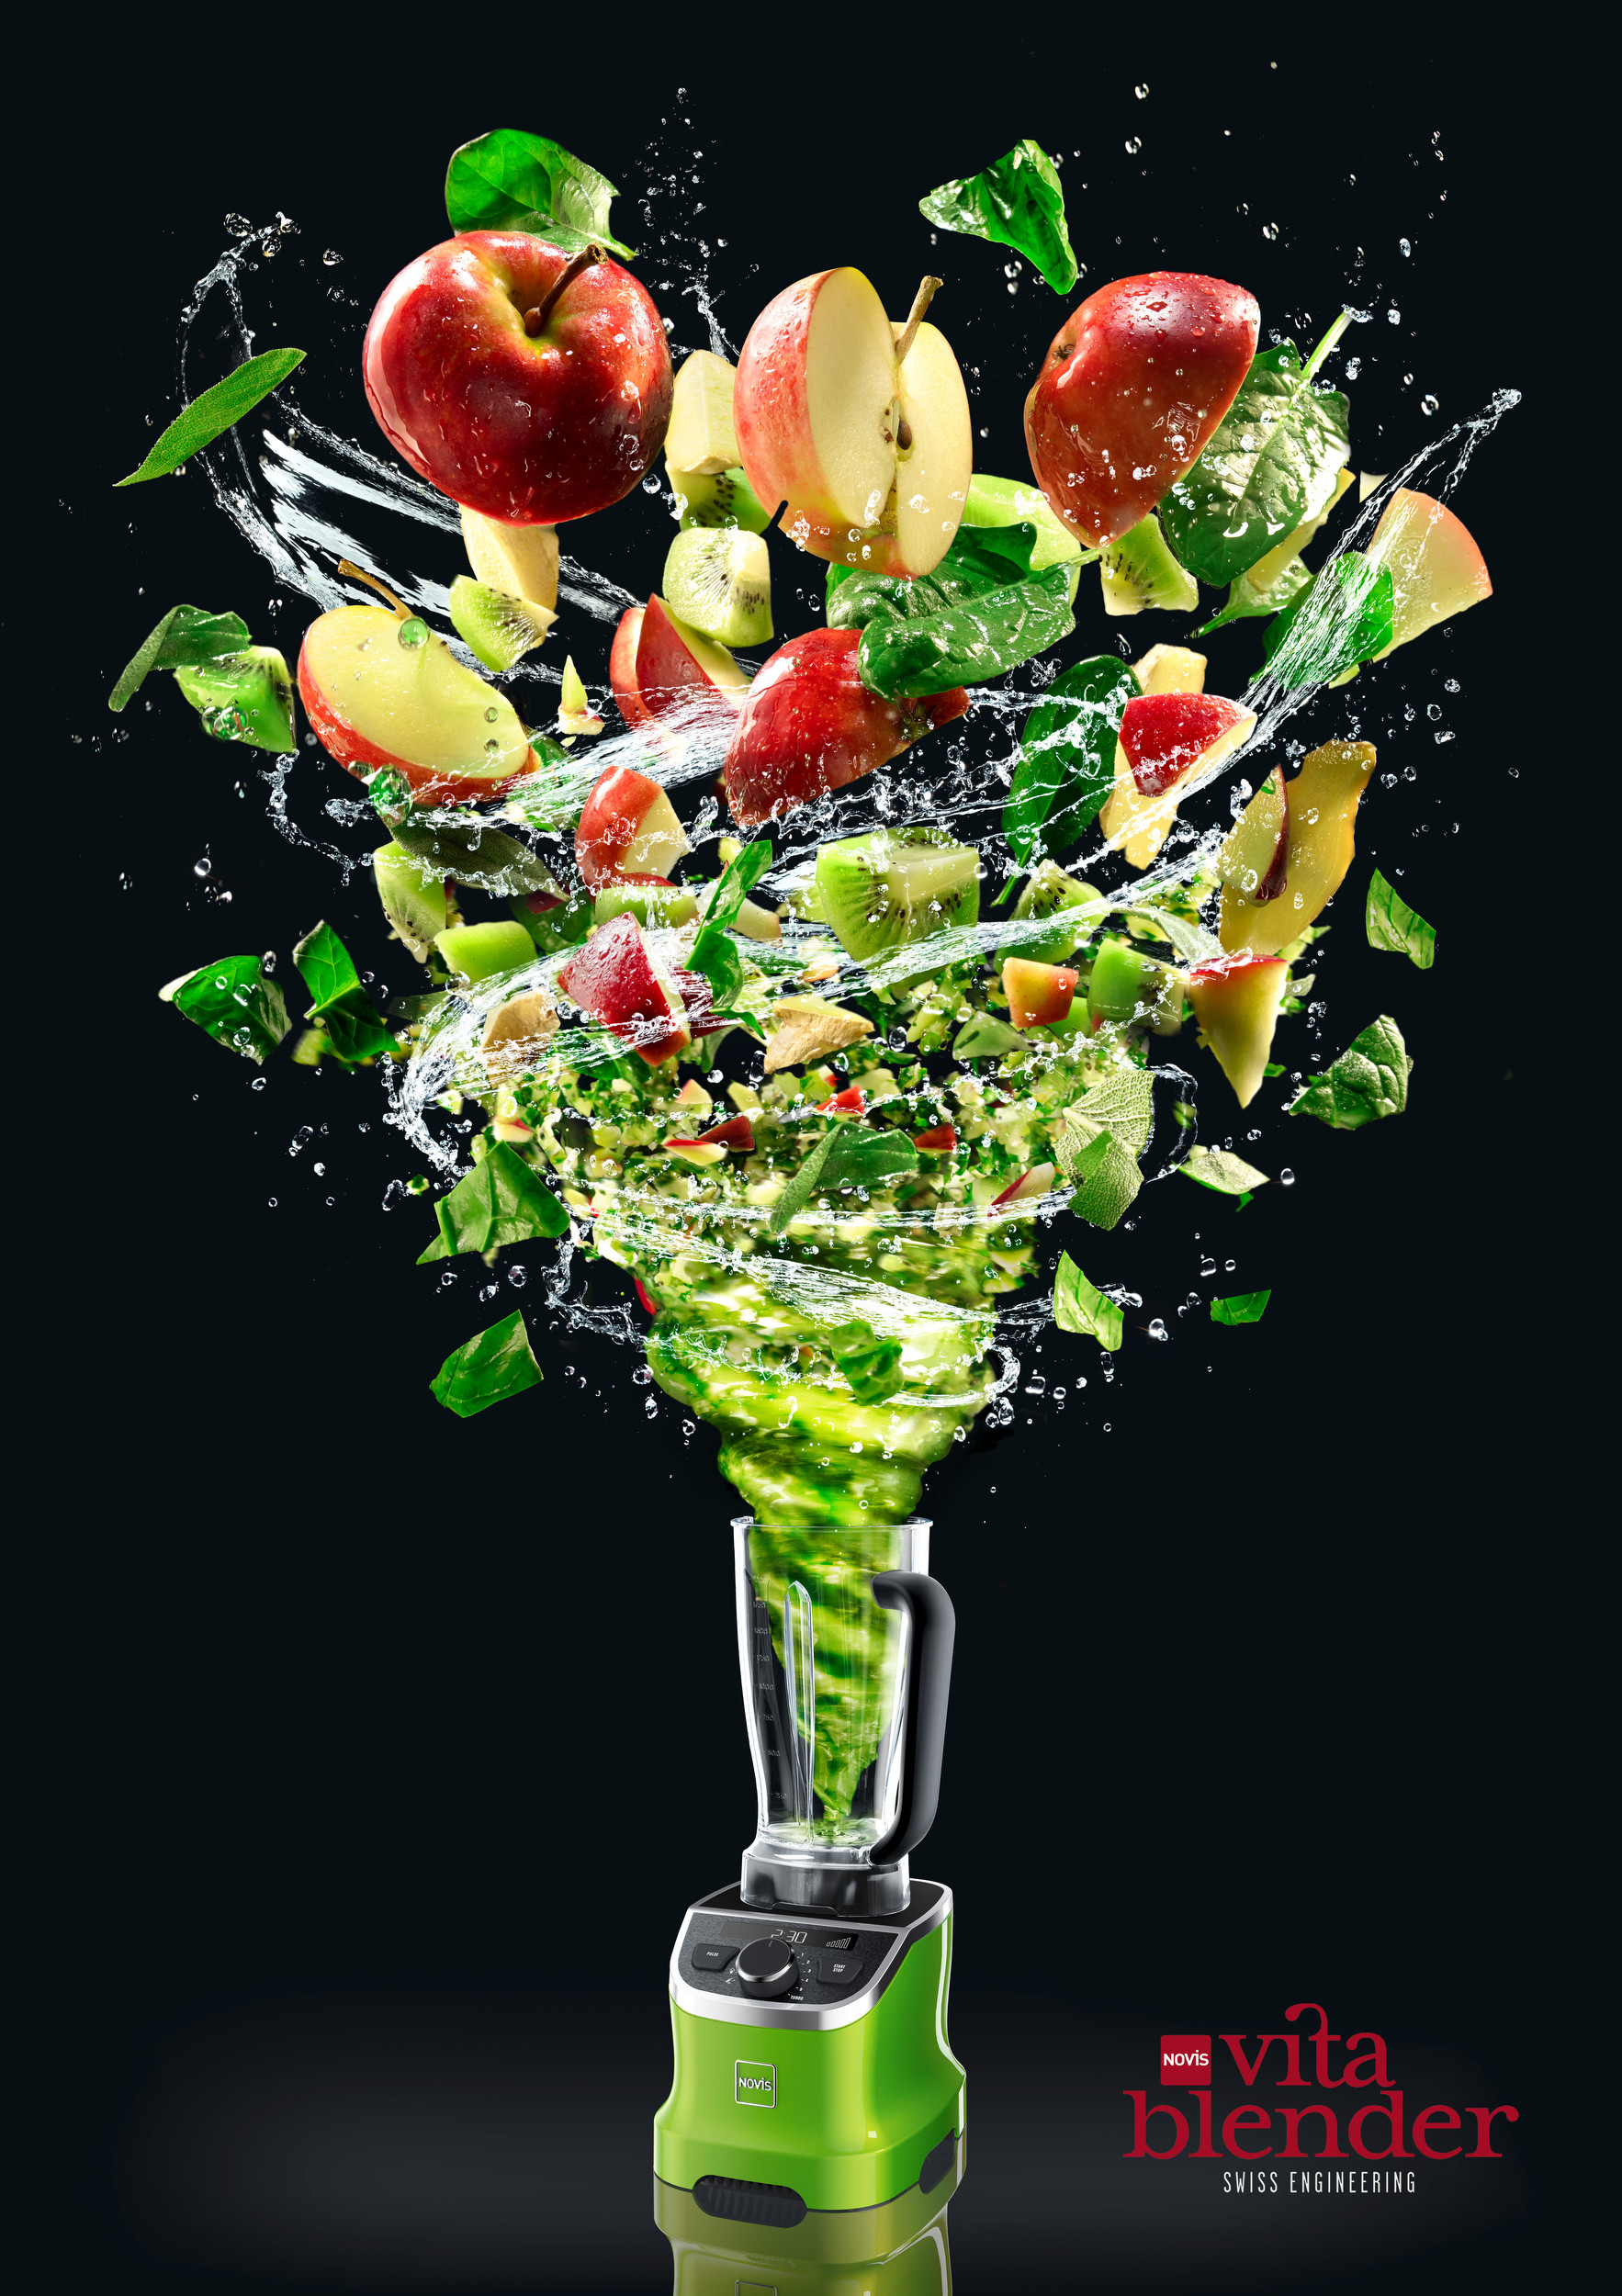 Vita Blender Green Smoothie.JPG